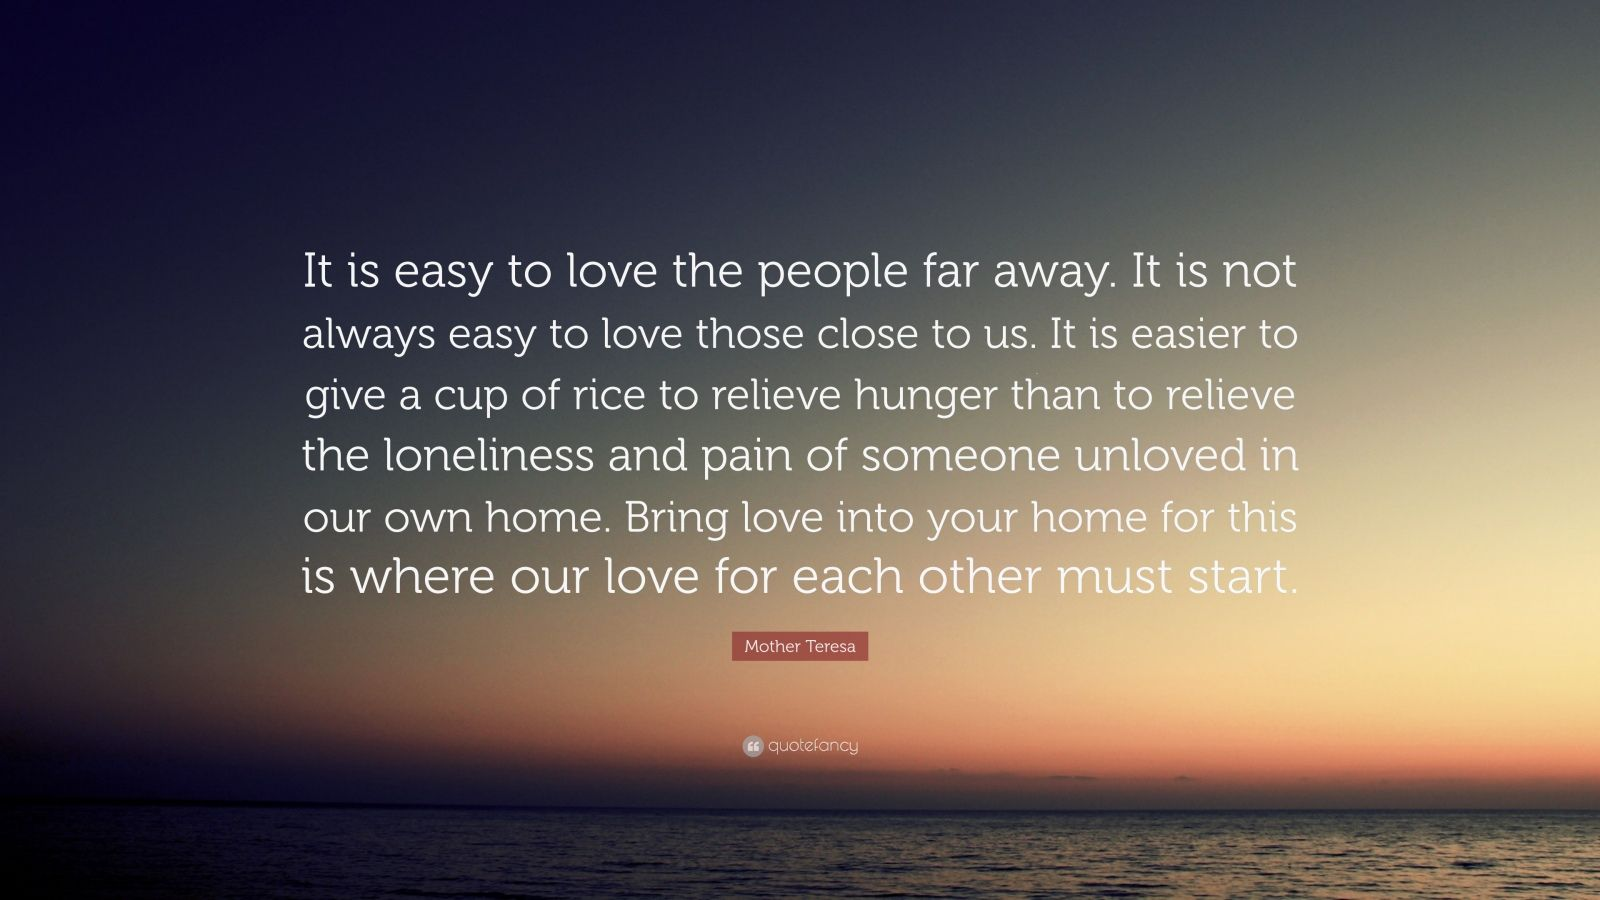 "Mother Teresa Quote: ""It is easy to love the people far away. It is not always easy to love those close to us. It is easier to give a cup of rice to relieve hunger than to relieve the loneliness and pain of someone unloved in our own home. Bring love into your home for this is where our love for each other must start."""